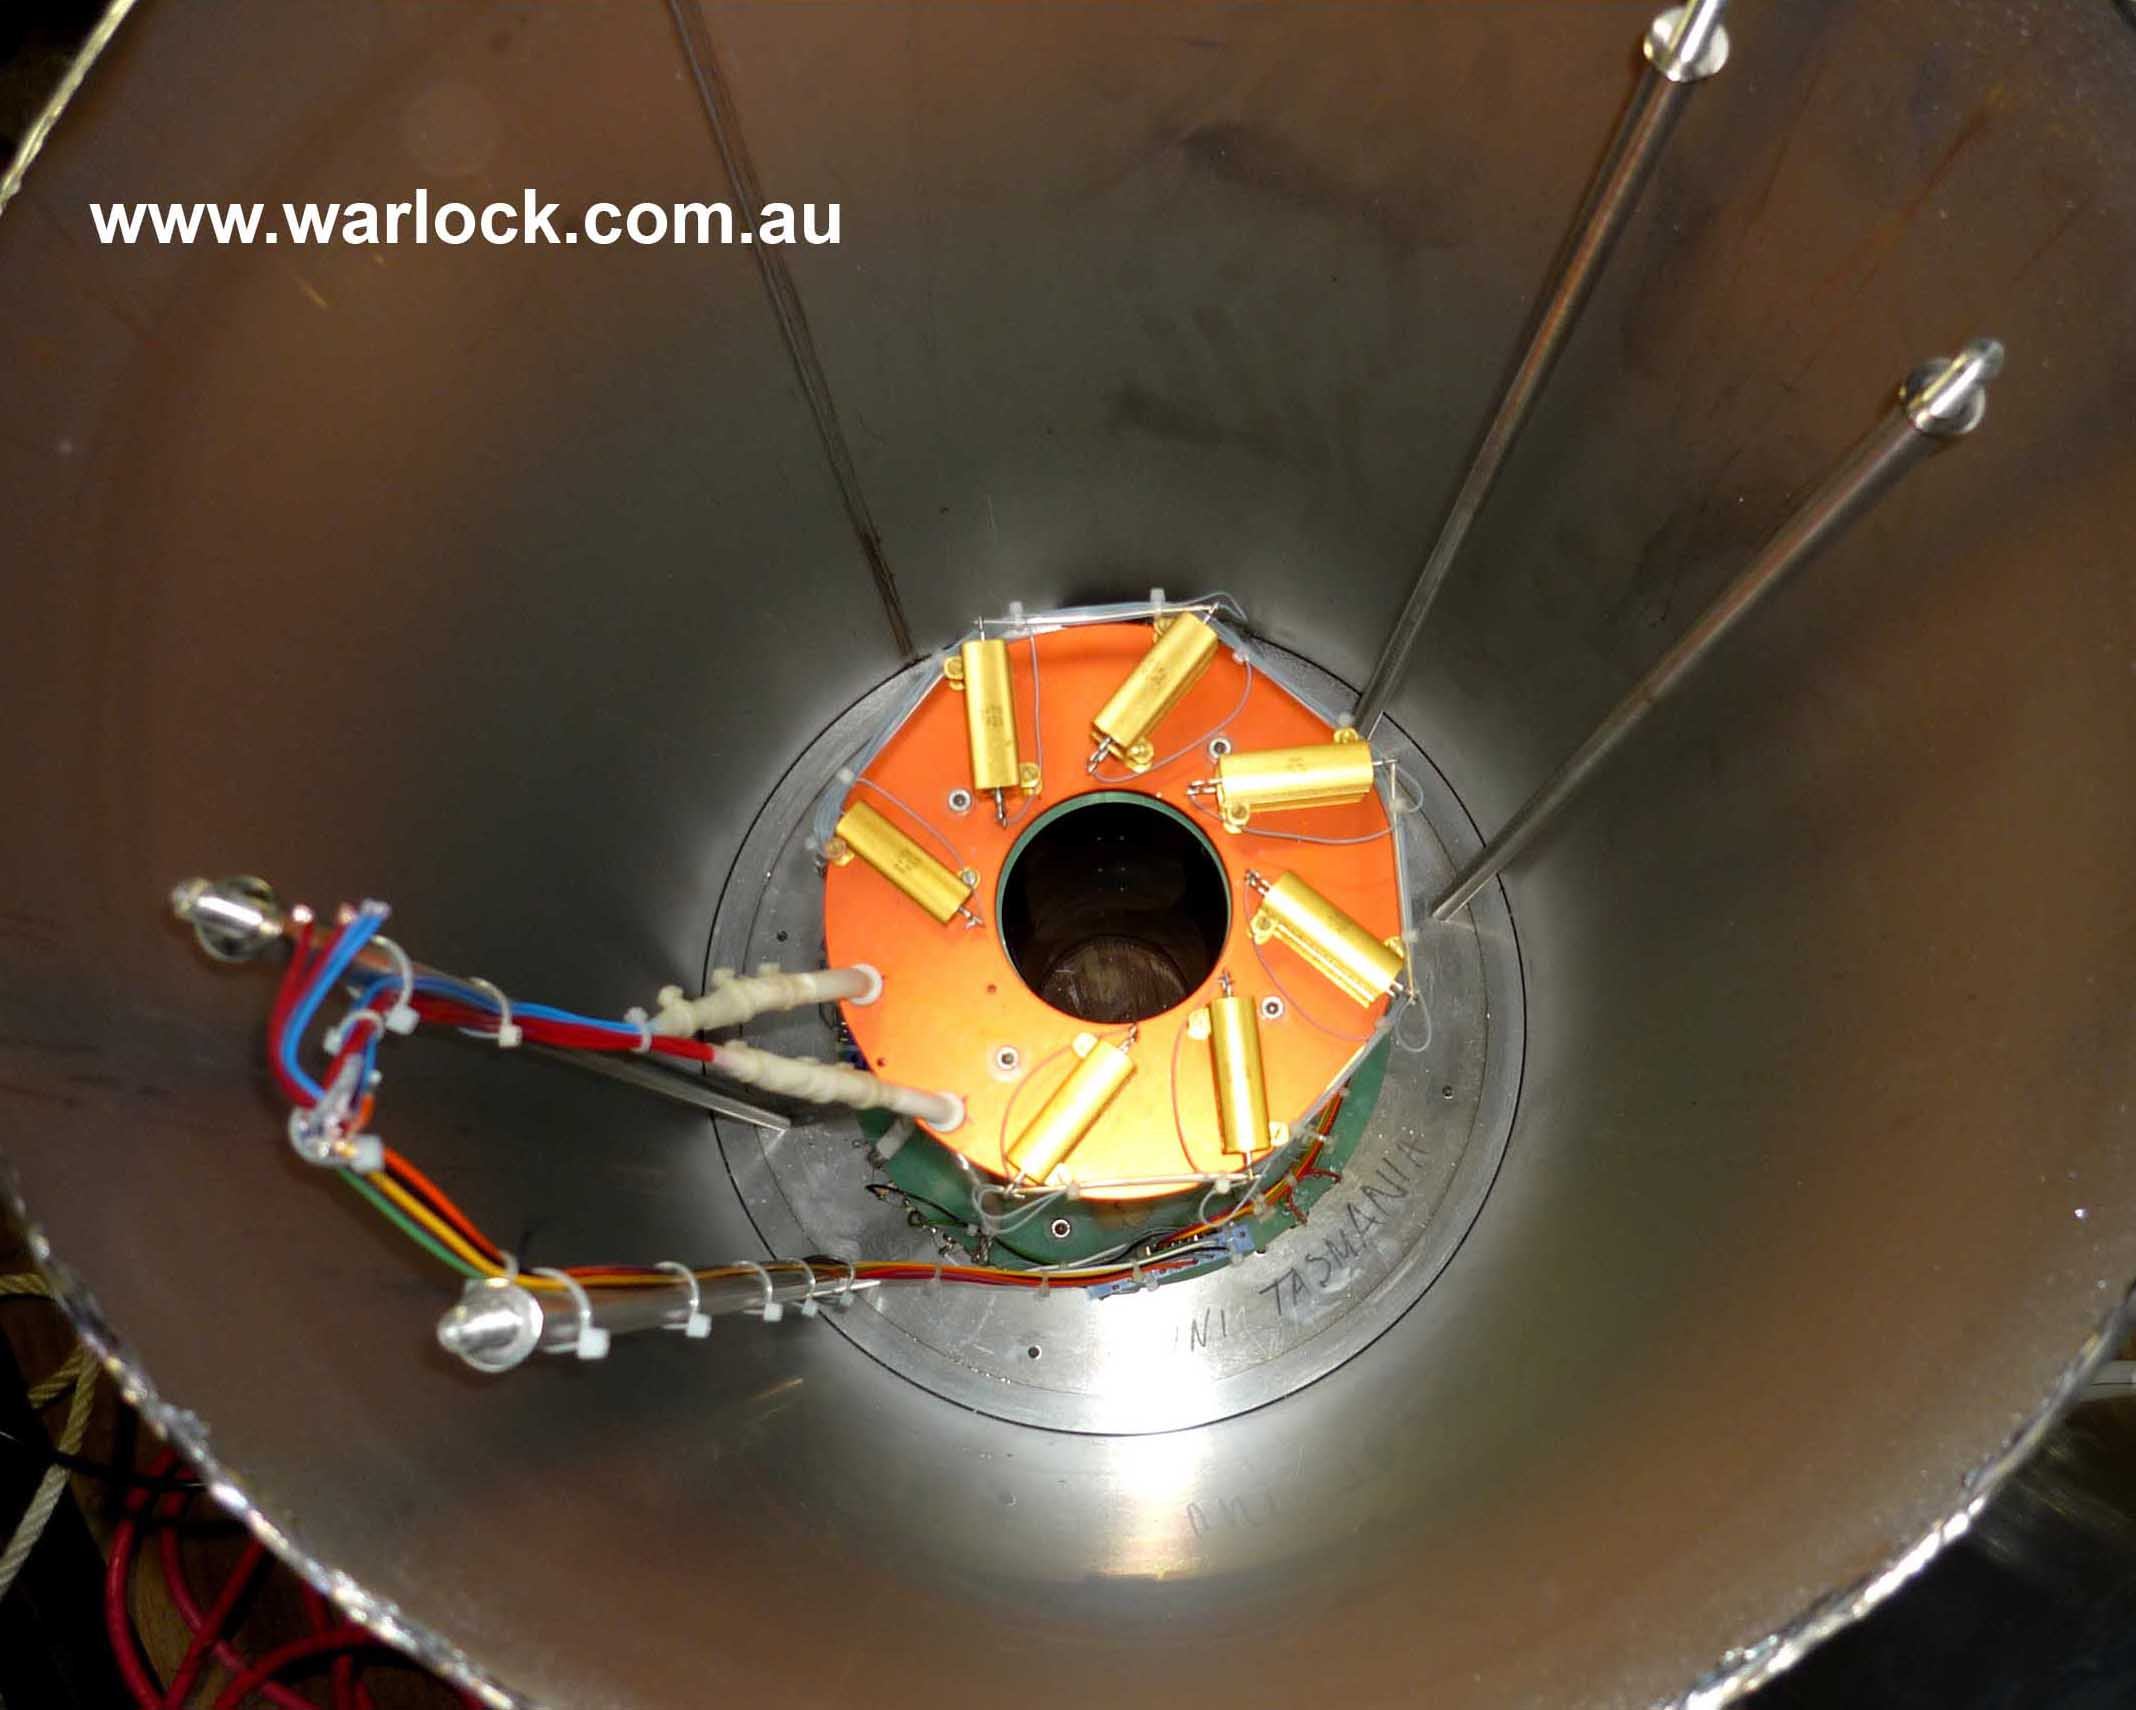 The superconducting magnet as viewed from the top of the helium vessel